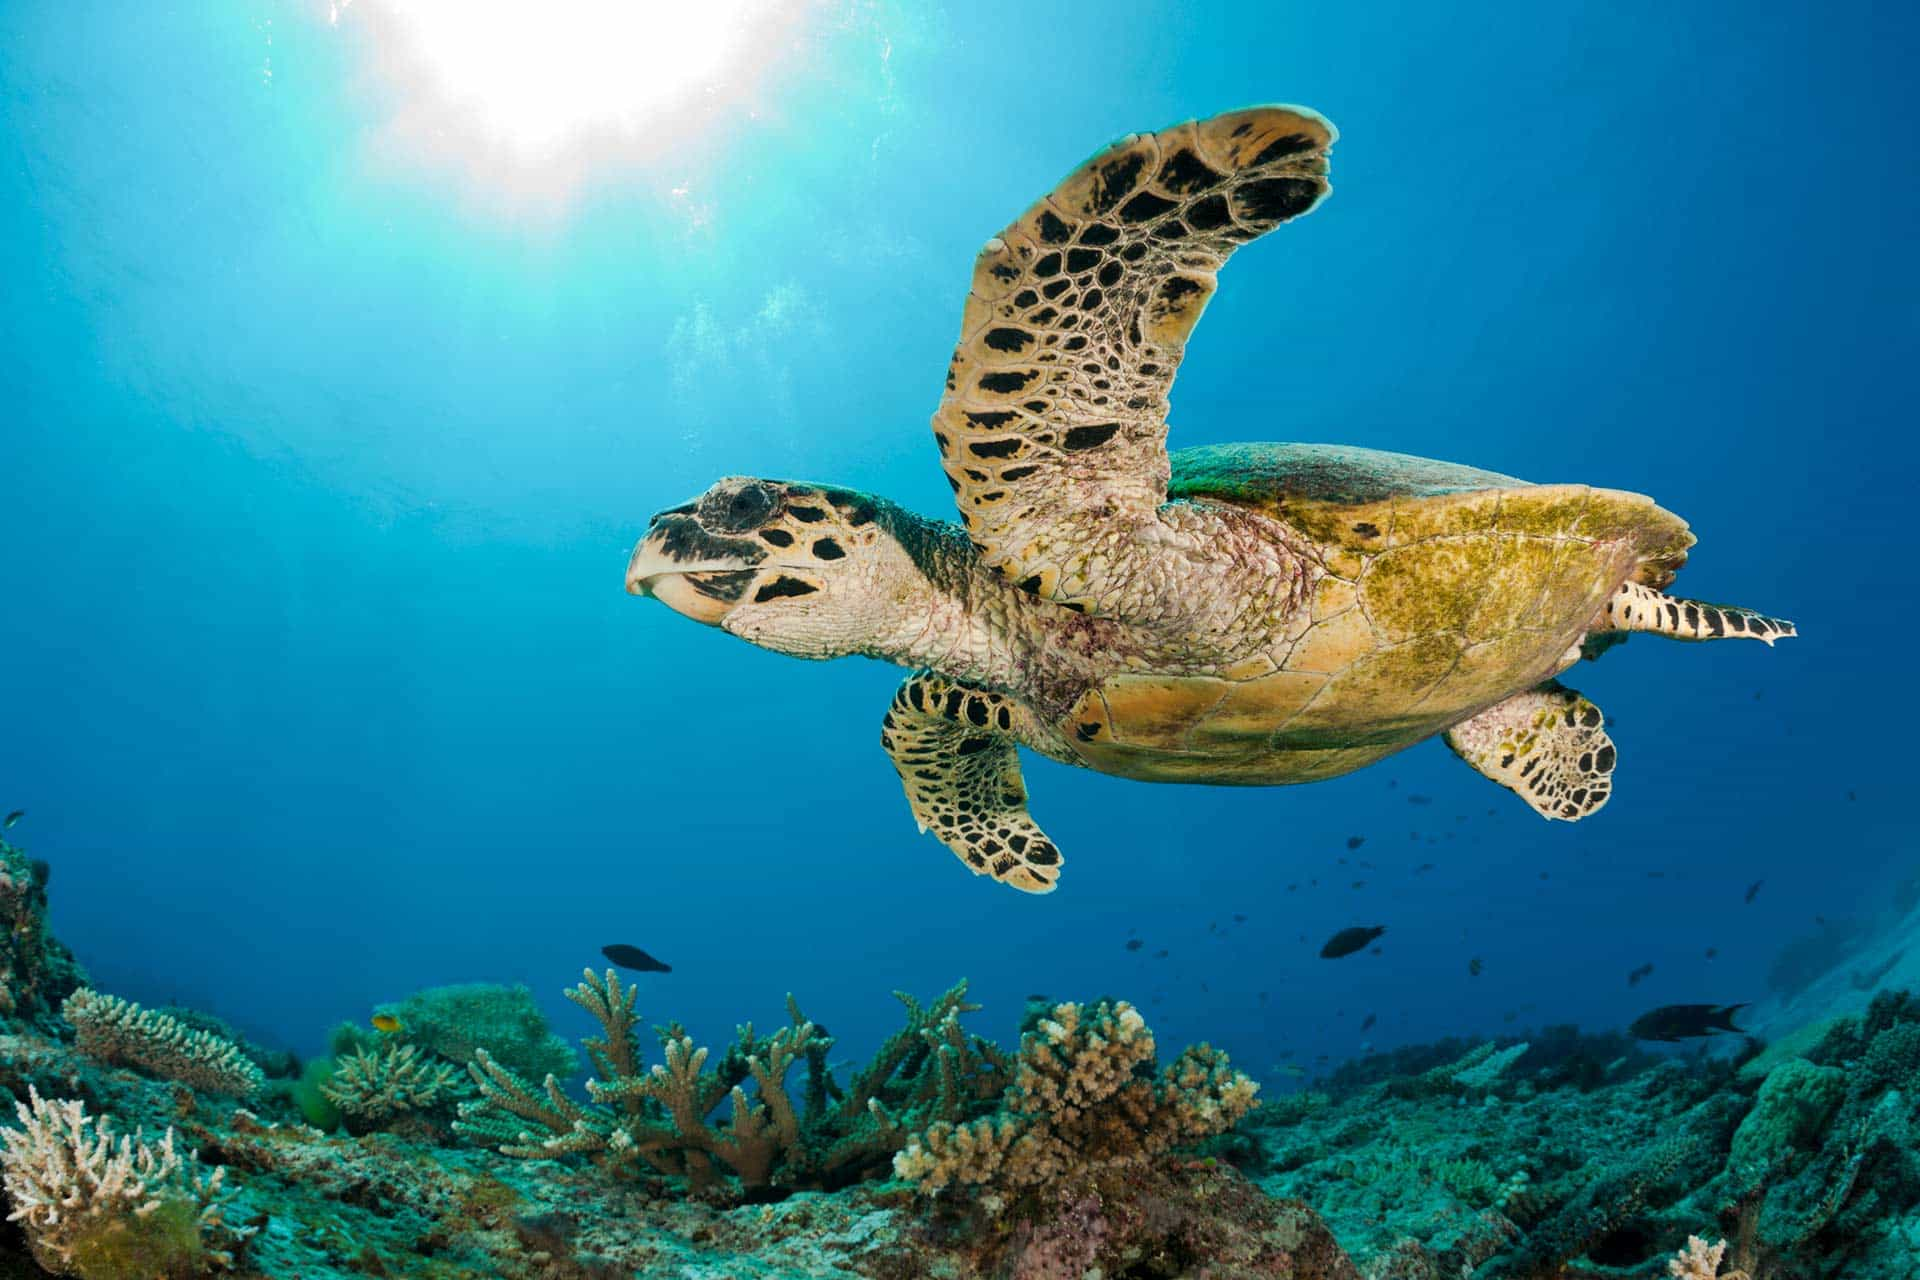 hawksbill sea turtle swimming above a coral reef